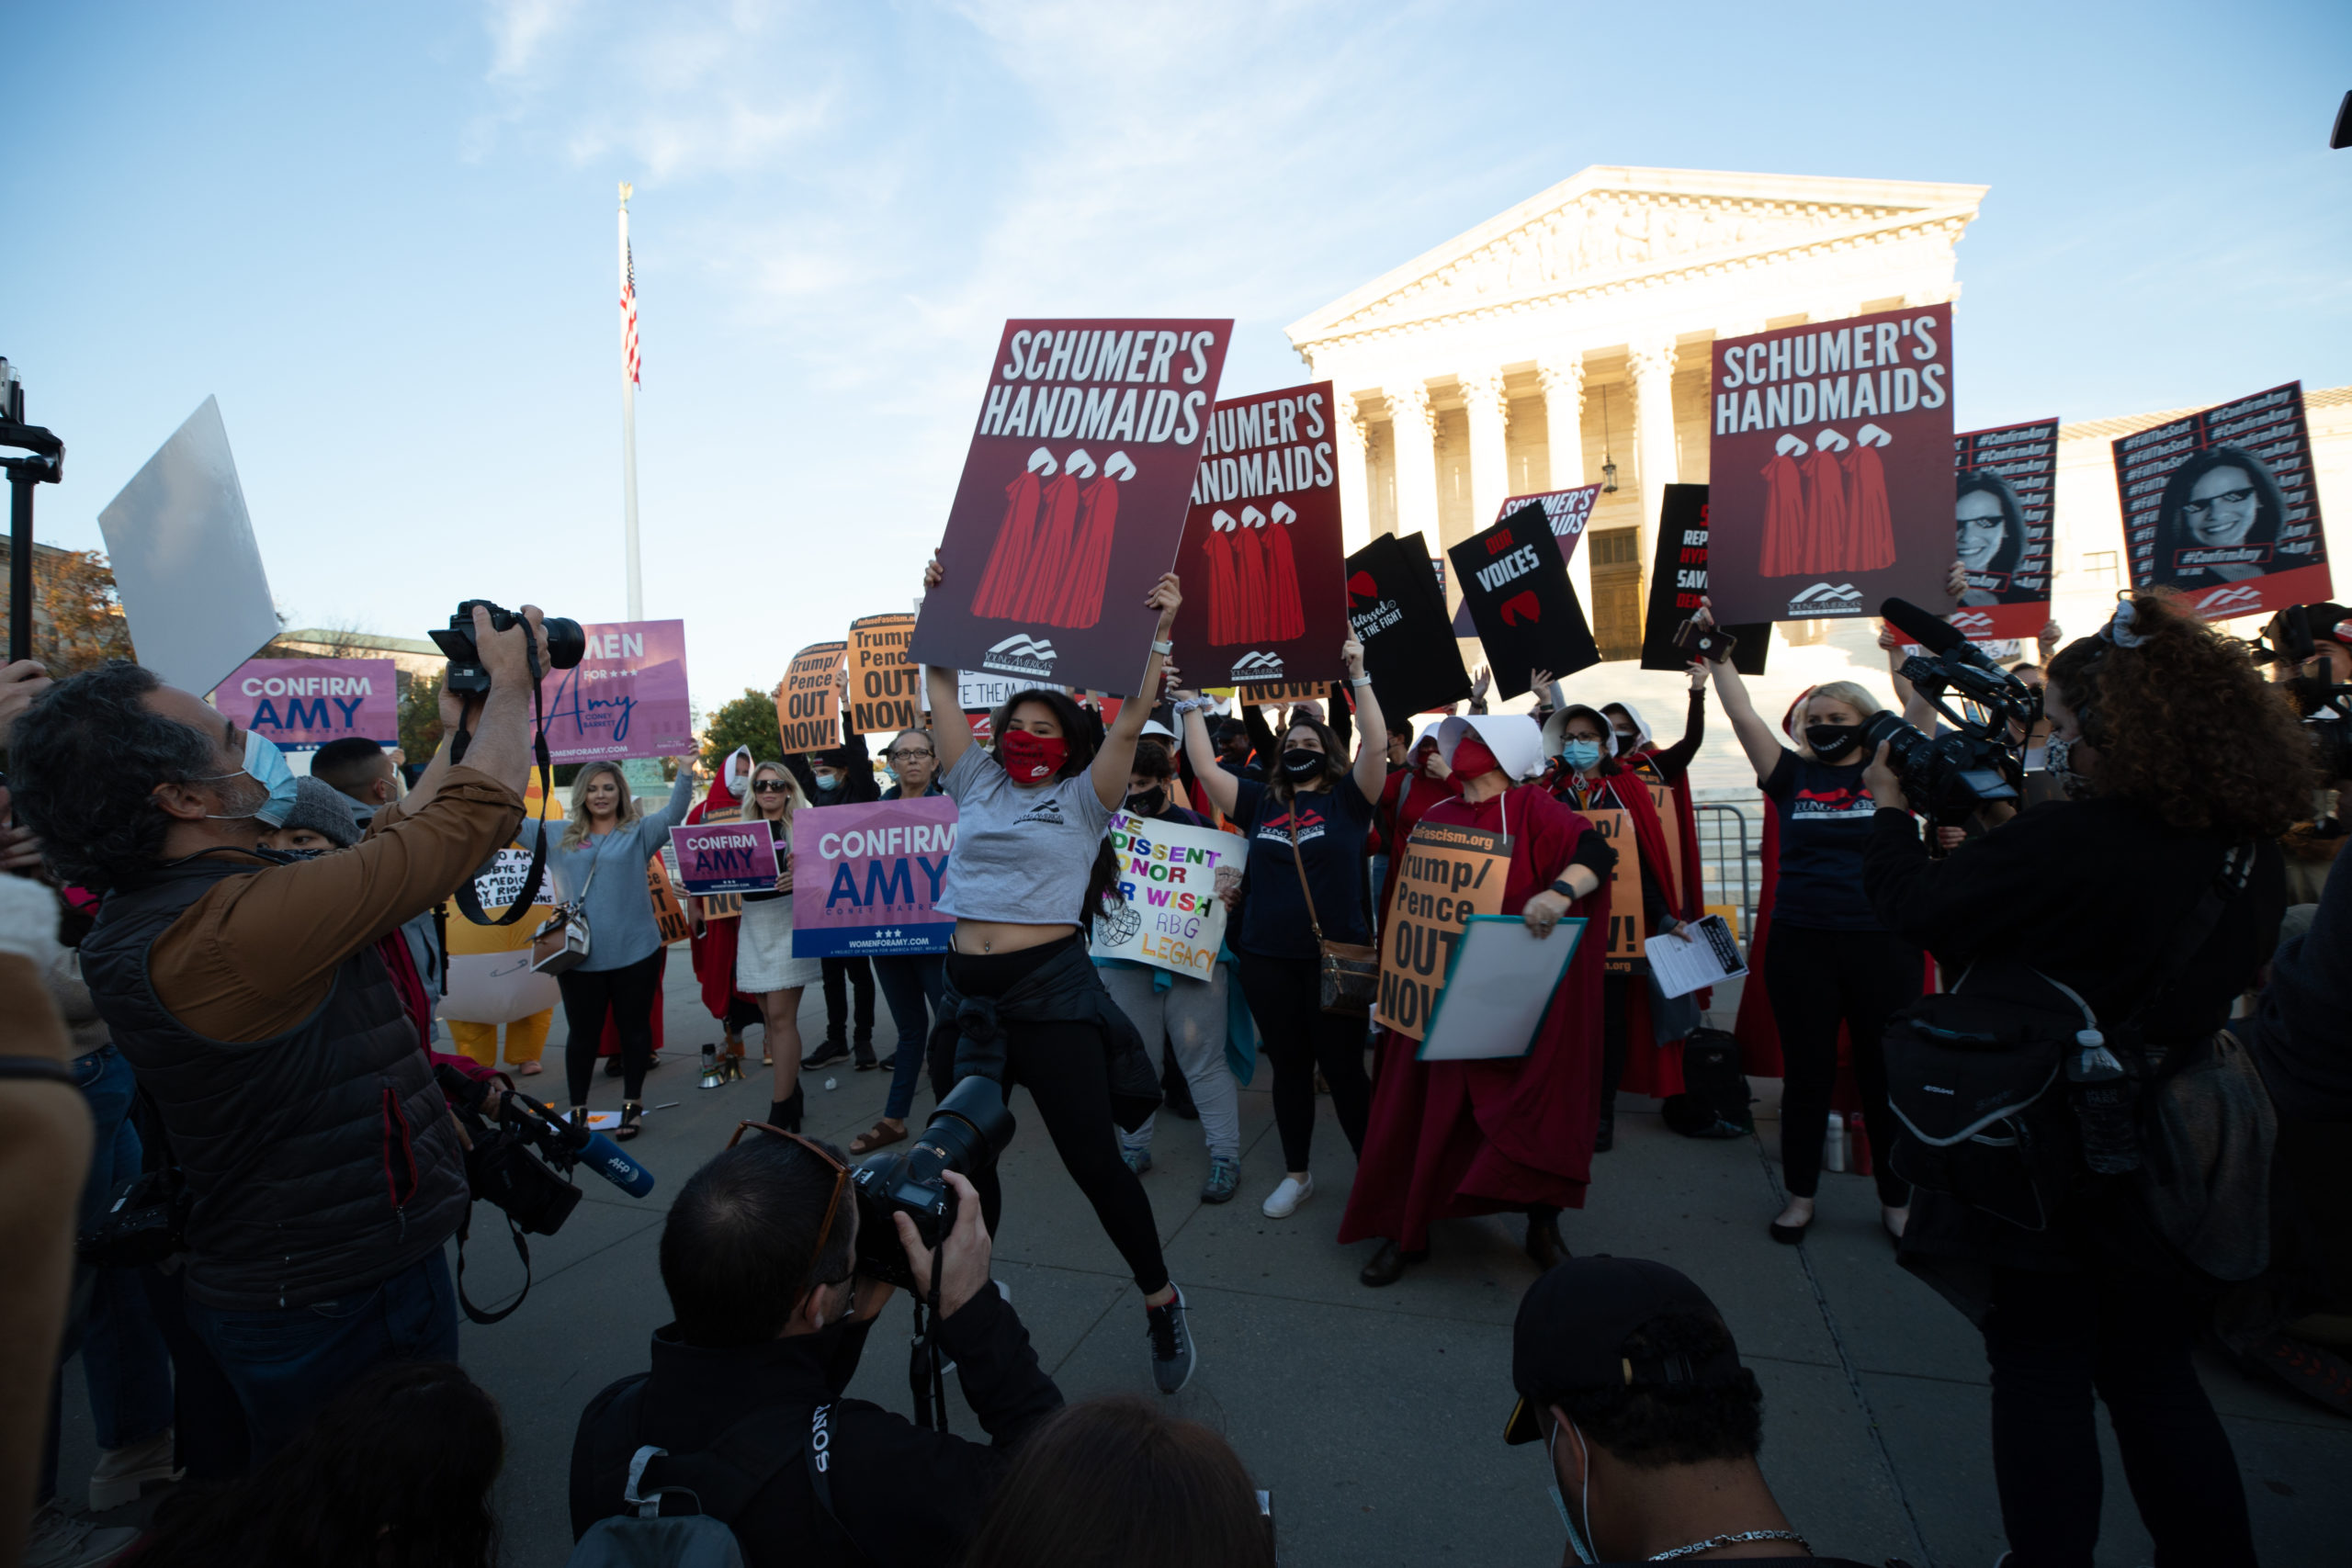 A woman with Young America's Foundation jumps in front of anti-Amy Coney Barrett and anti-Trump protesters at the Supreme Court in Washington, D.C. on October 26, 2020. (Kaylee Greenlee - Daily Caller News Foundation)